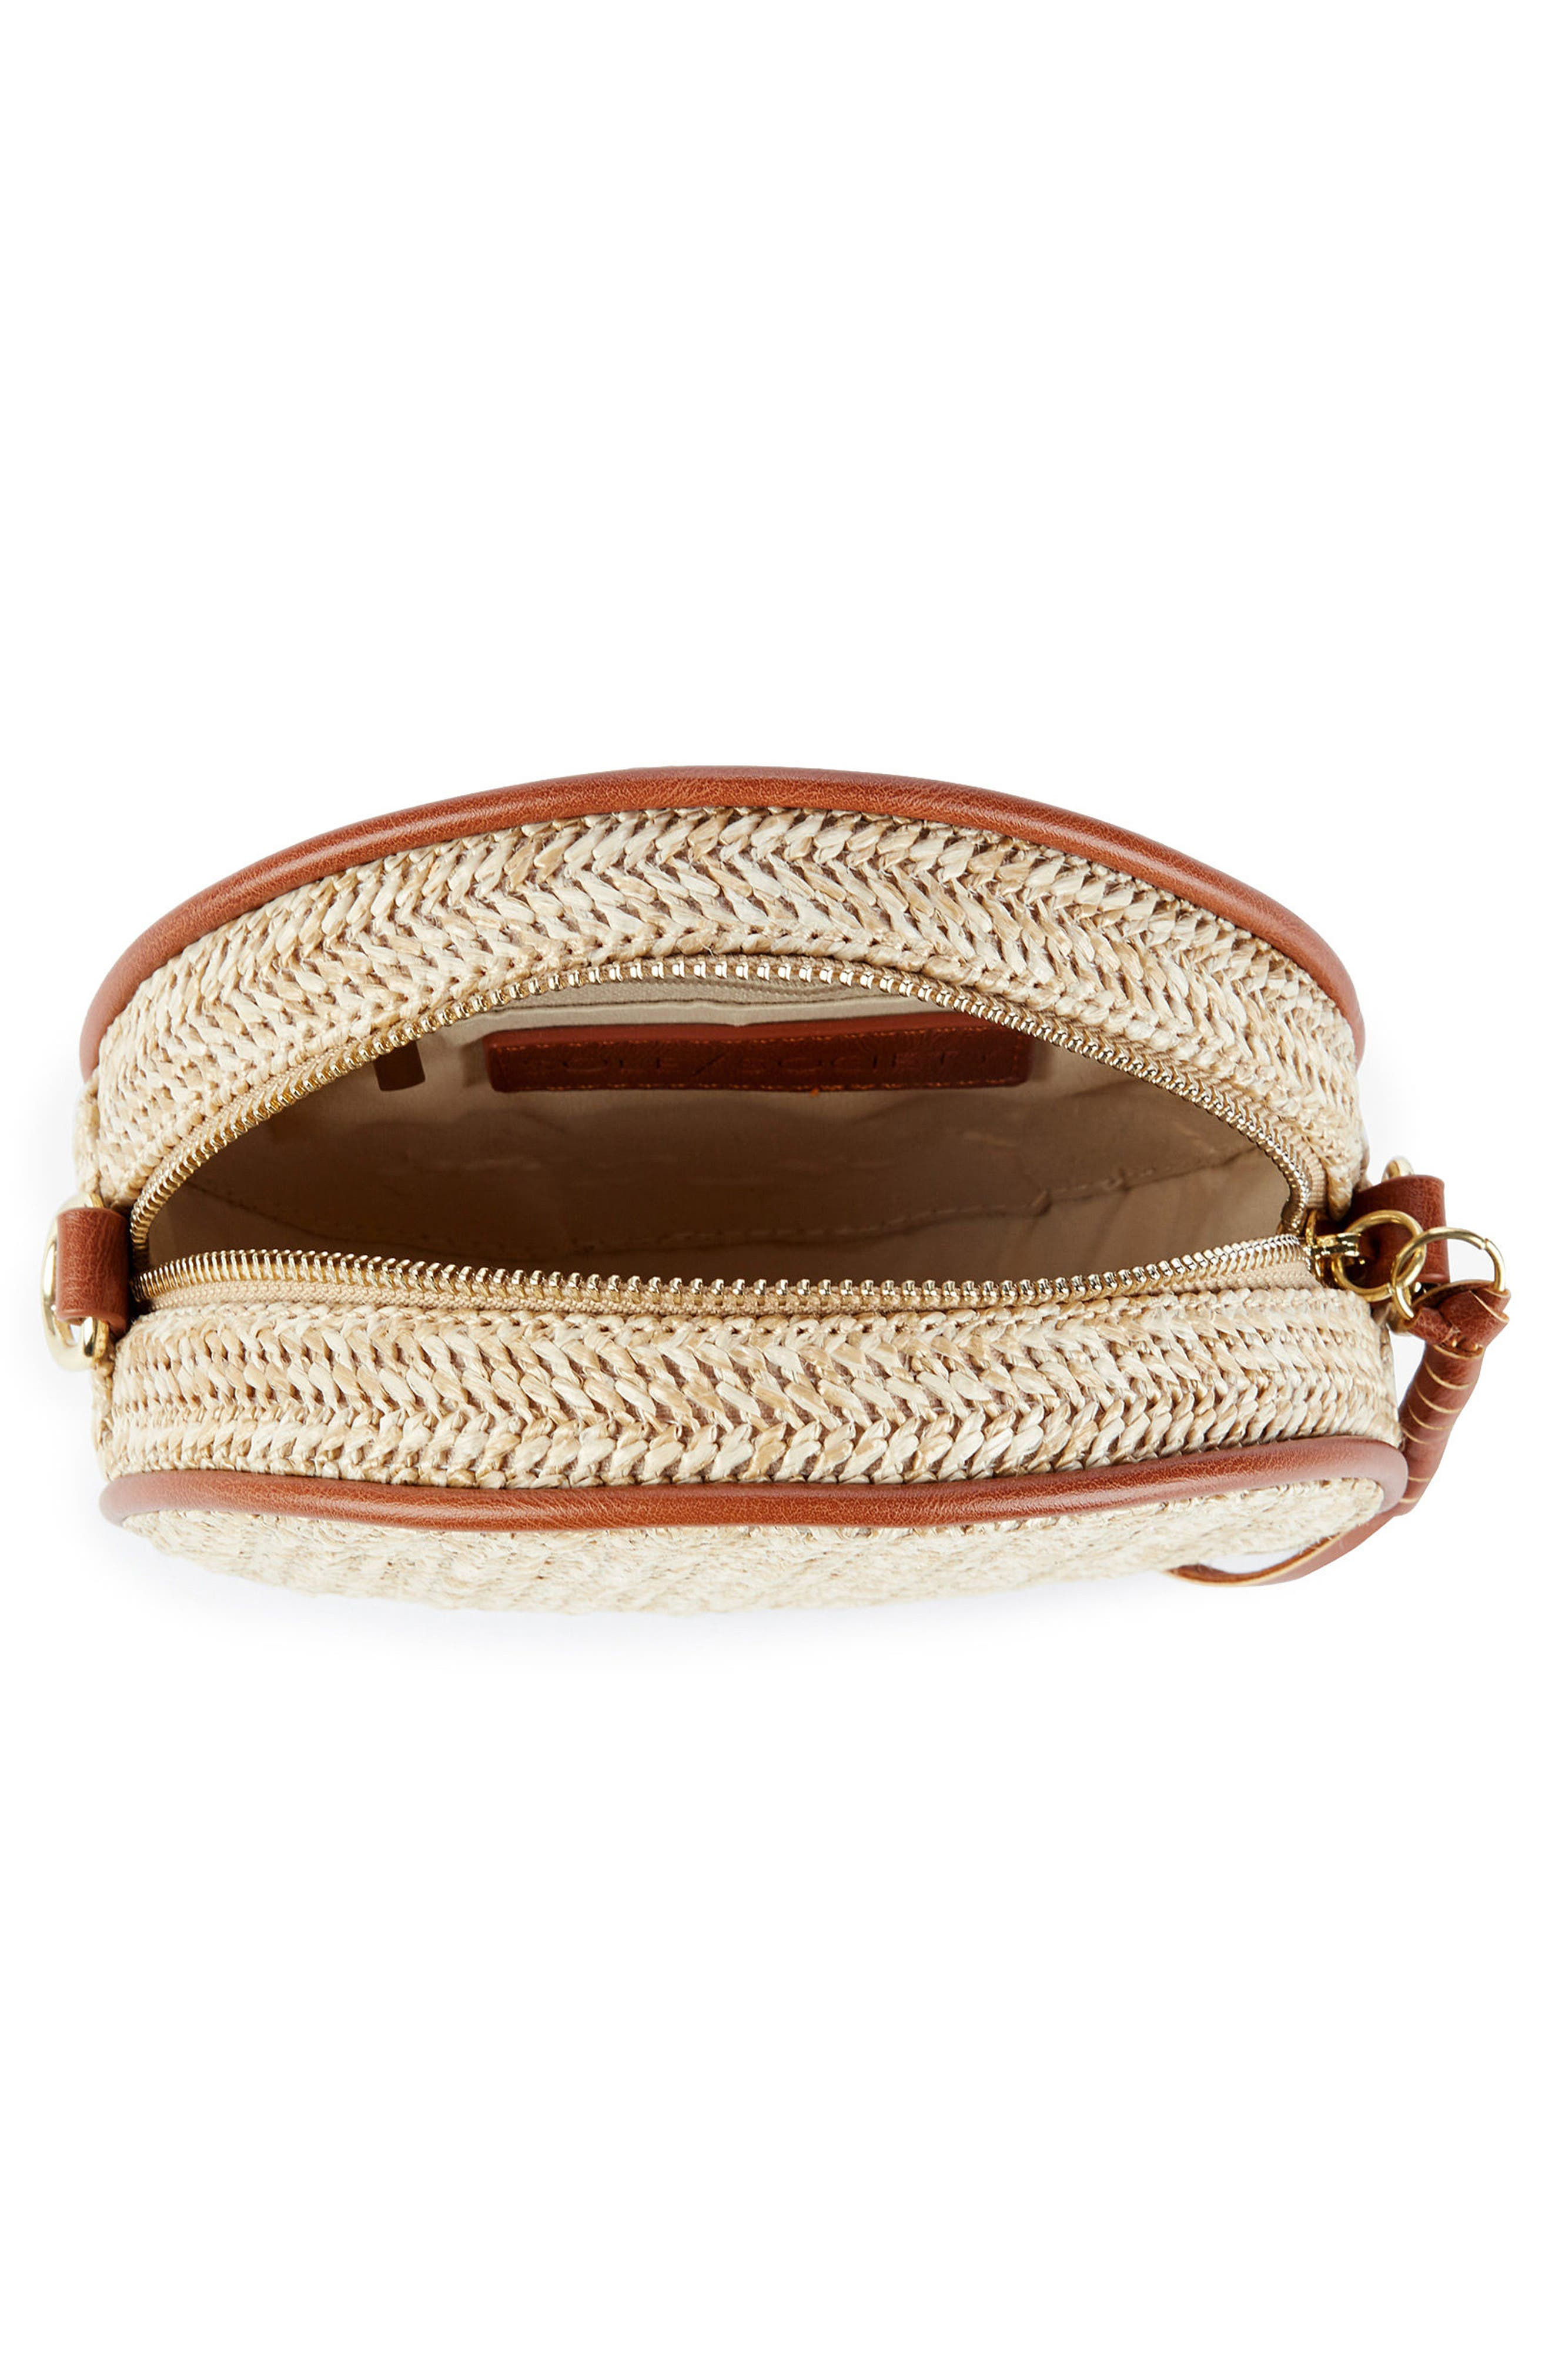 Pipper Small Faux Leather Crossbody Bag,                             Alternate thumbnail 4, color,                             250